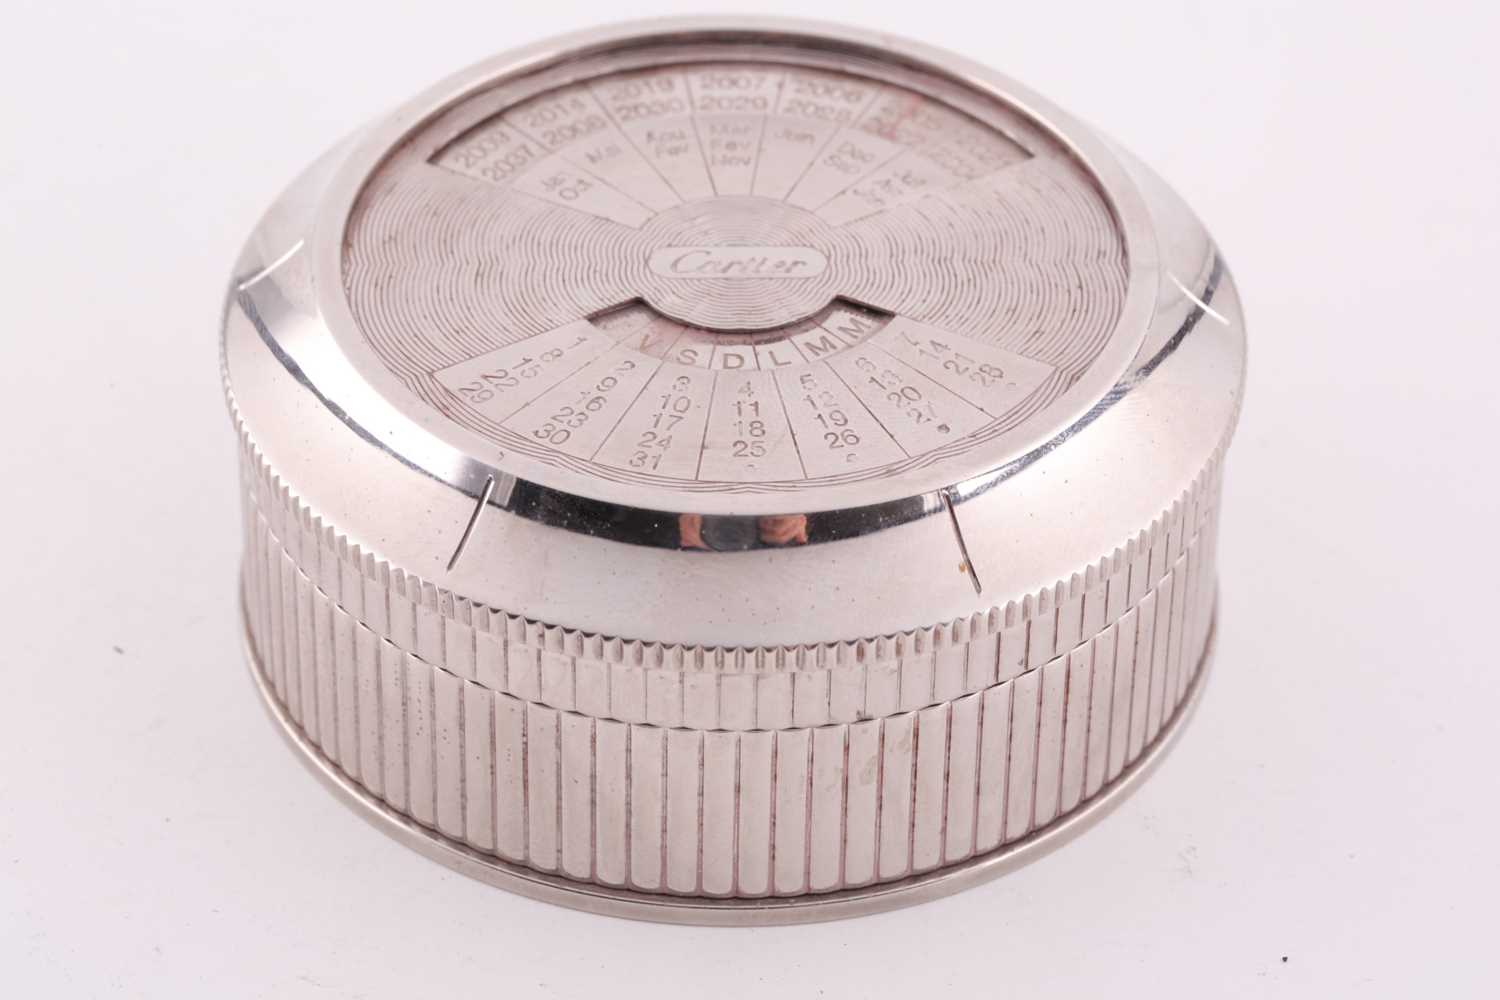 A Cartier chrome desk calender, with adjustable year, month, and date dial to lid, 8 cm diameter, - Image 3 of 5